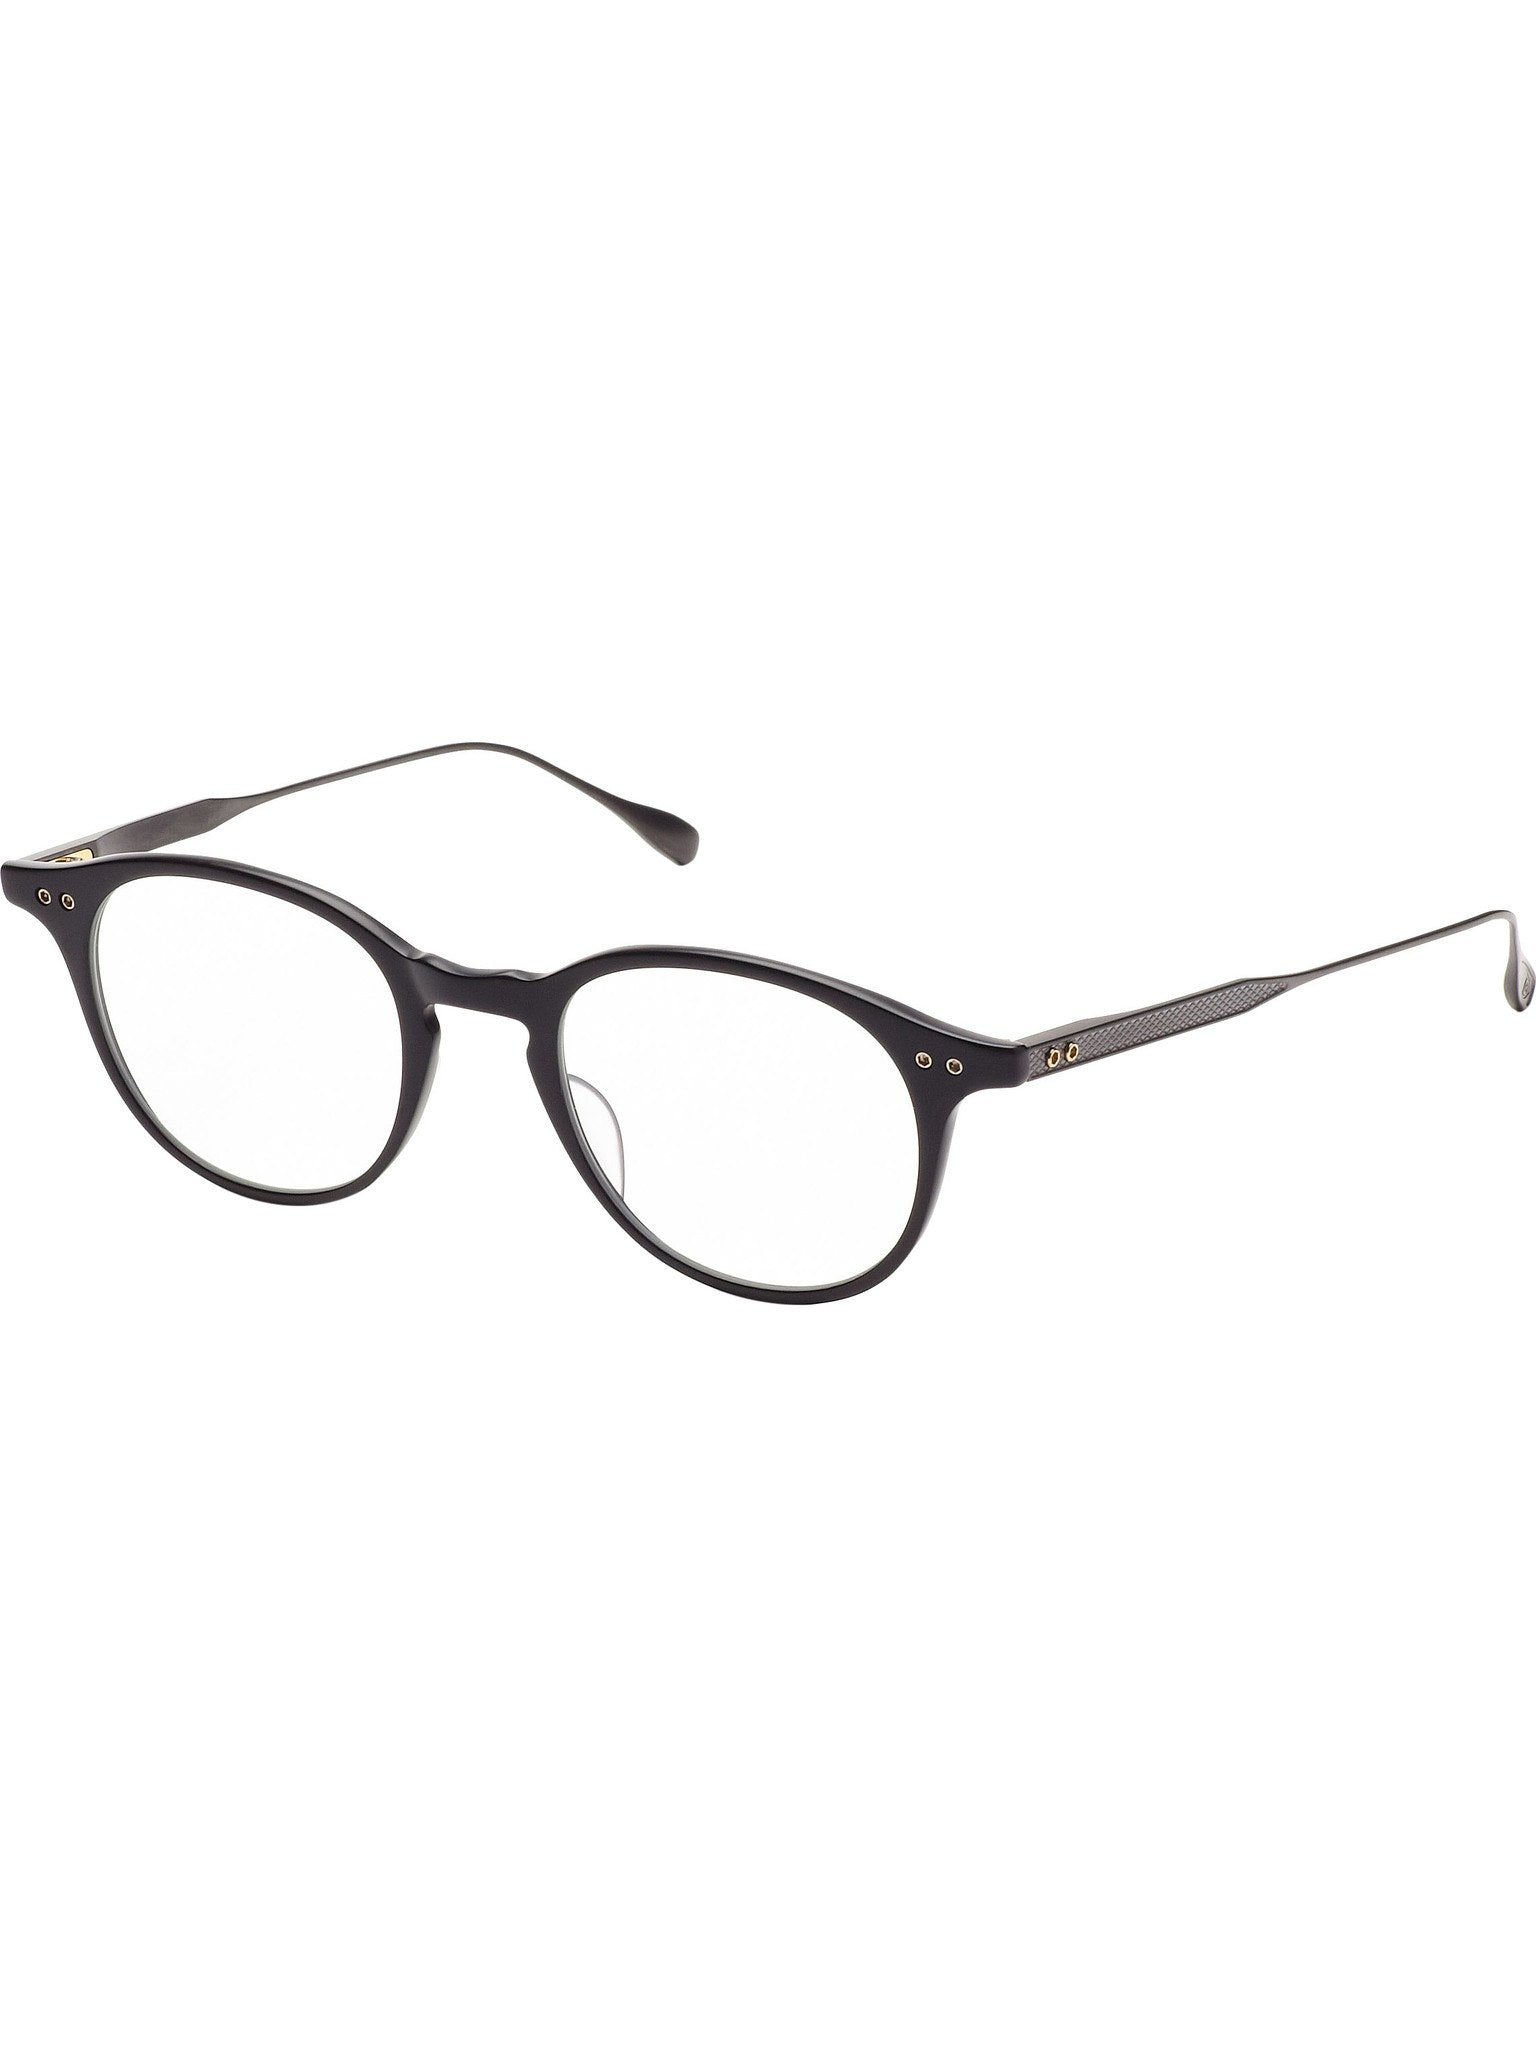 Optical Frame - Dita Ash DRX-2073-A Glasses